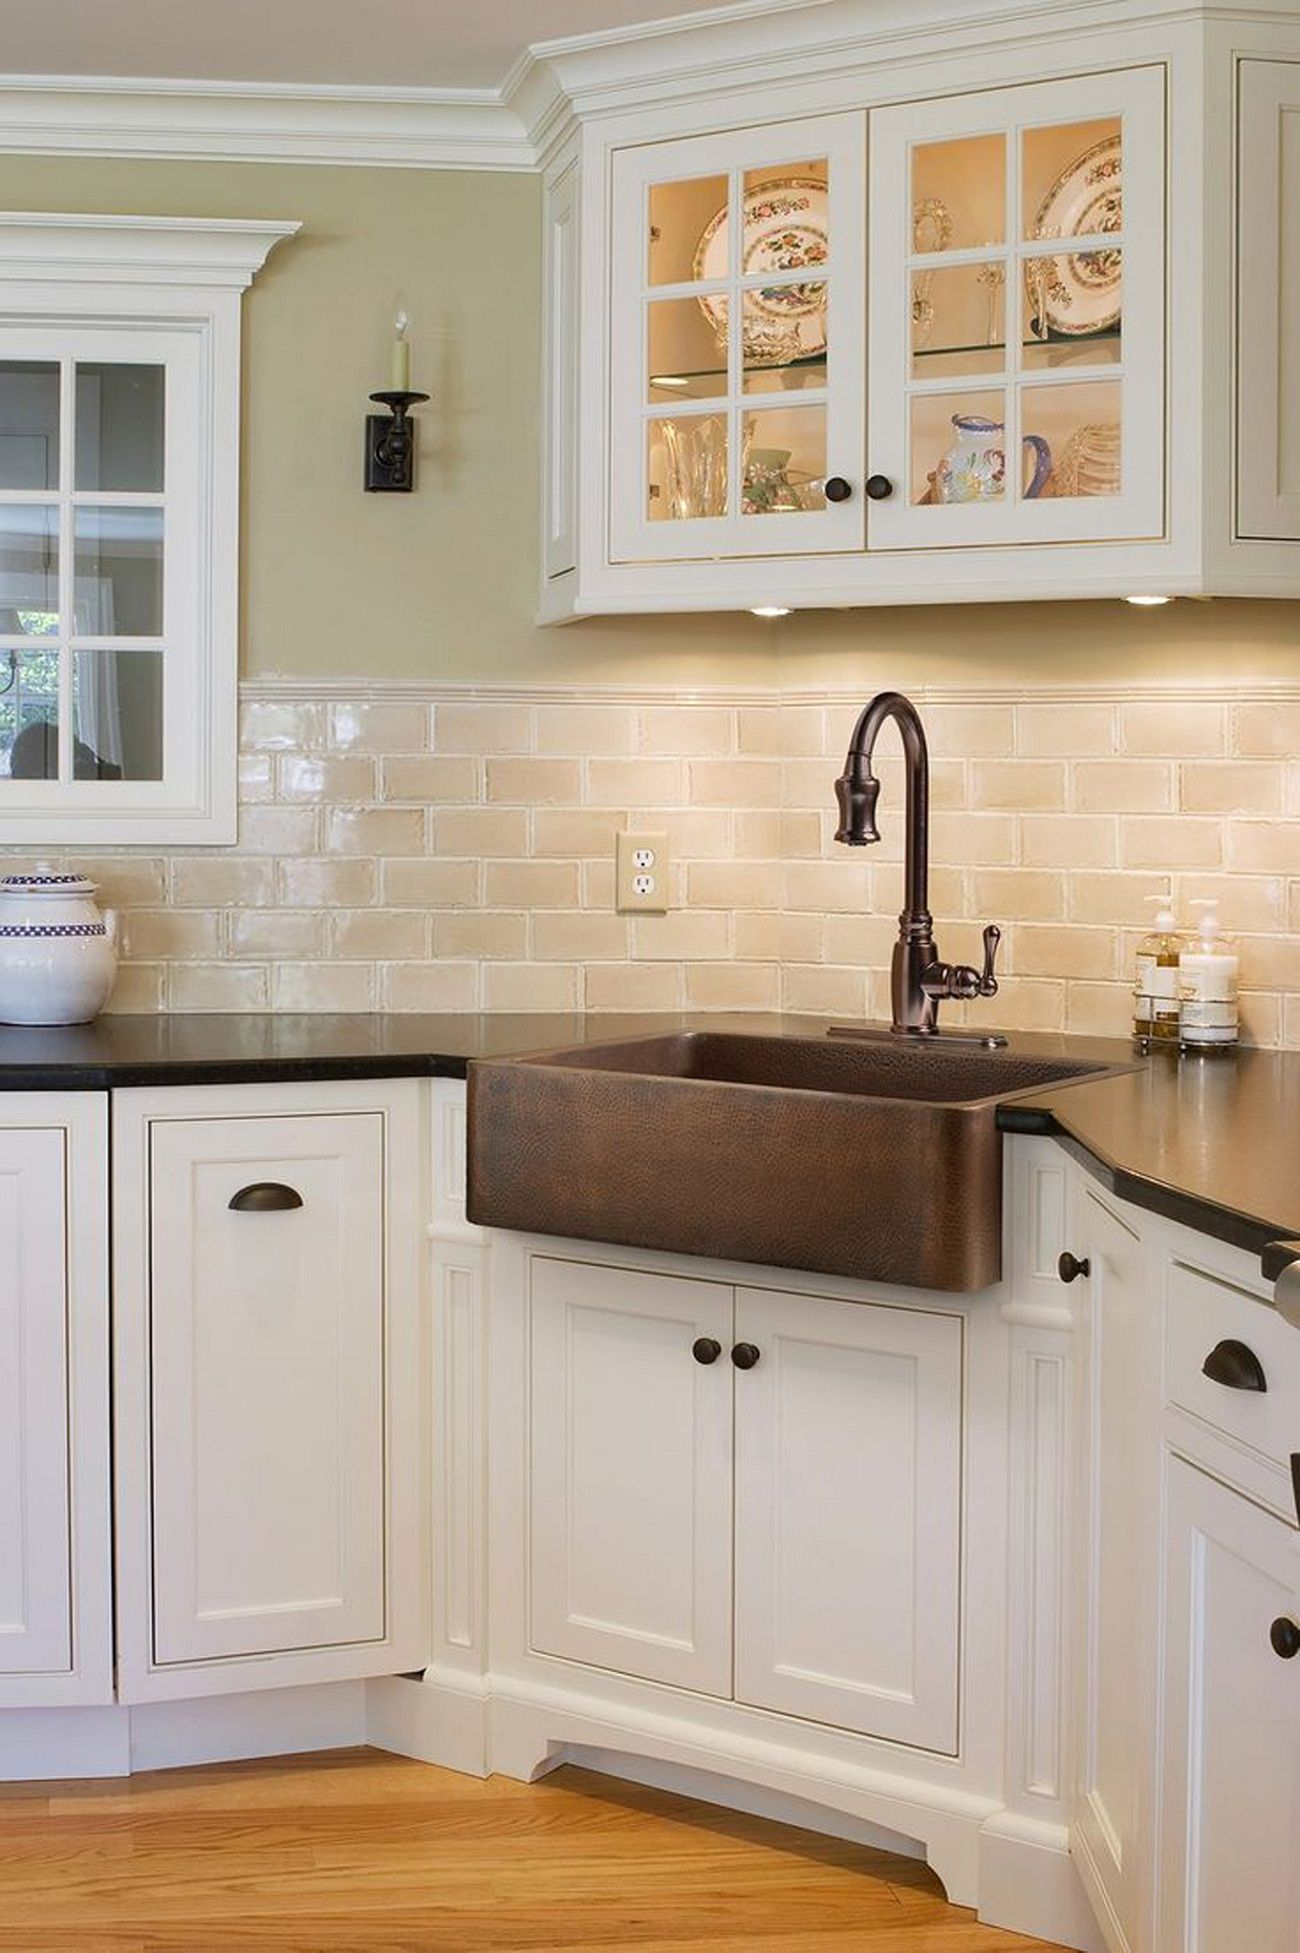 Kitchen Off White Subway Tile White Cabinets Minimalist Kitchen Design With Brown Countertop Farmhouse Sink Kitchen Kitchen Sink Decor Copper Farmhouse Sinks